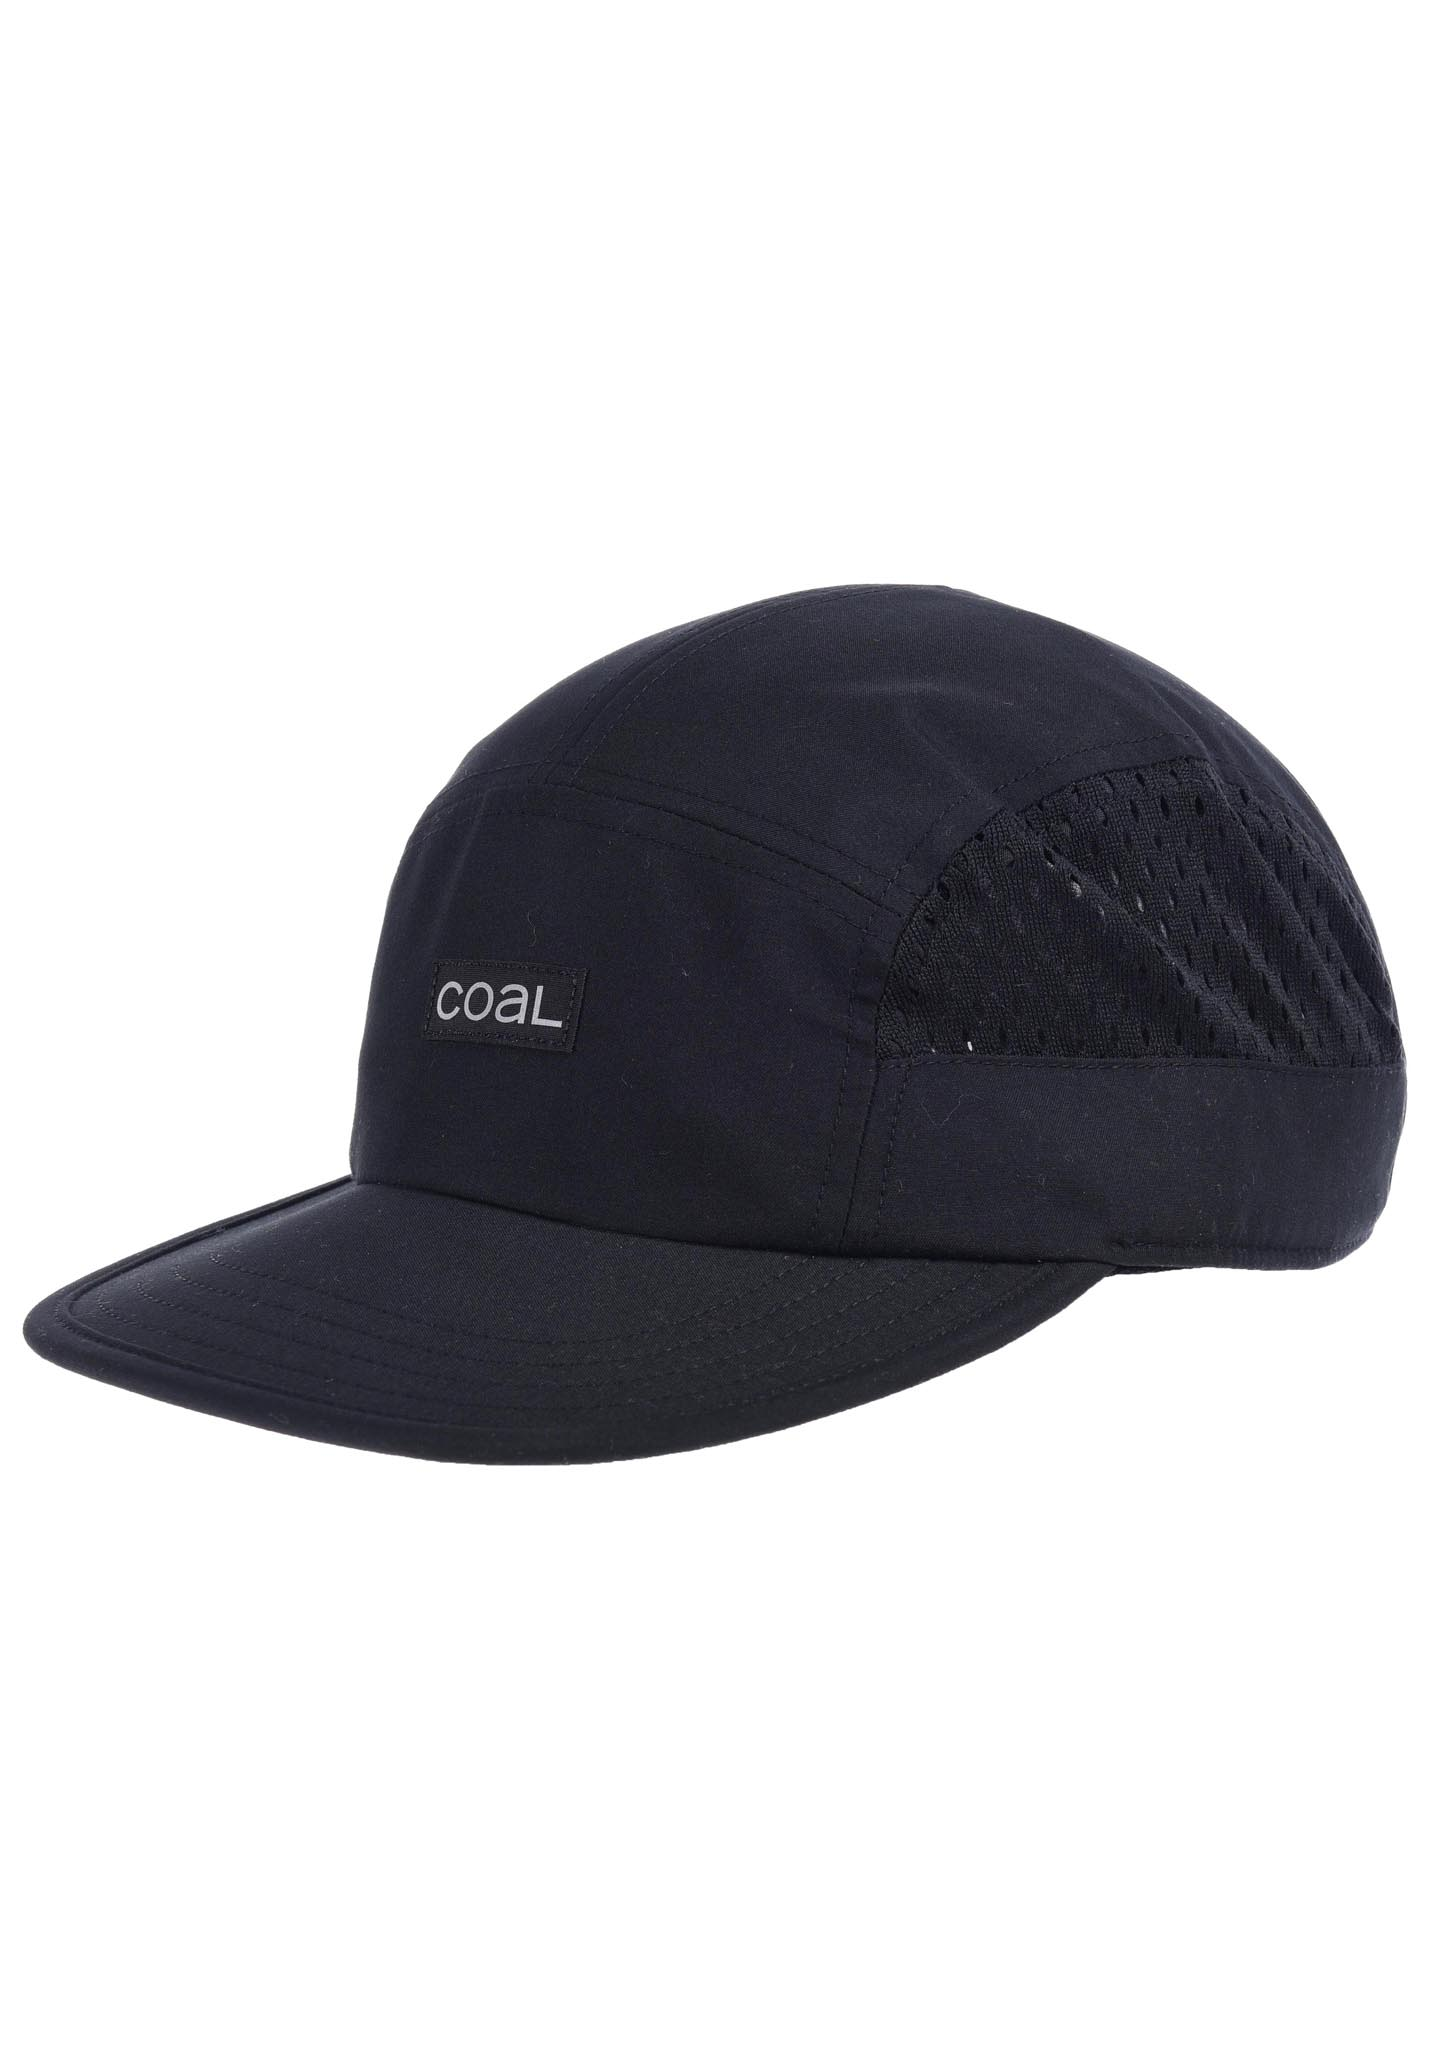 3624ef6f29e Coal The Provo - Snapback Cap - Black - Planet Sports